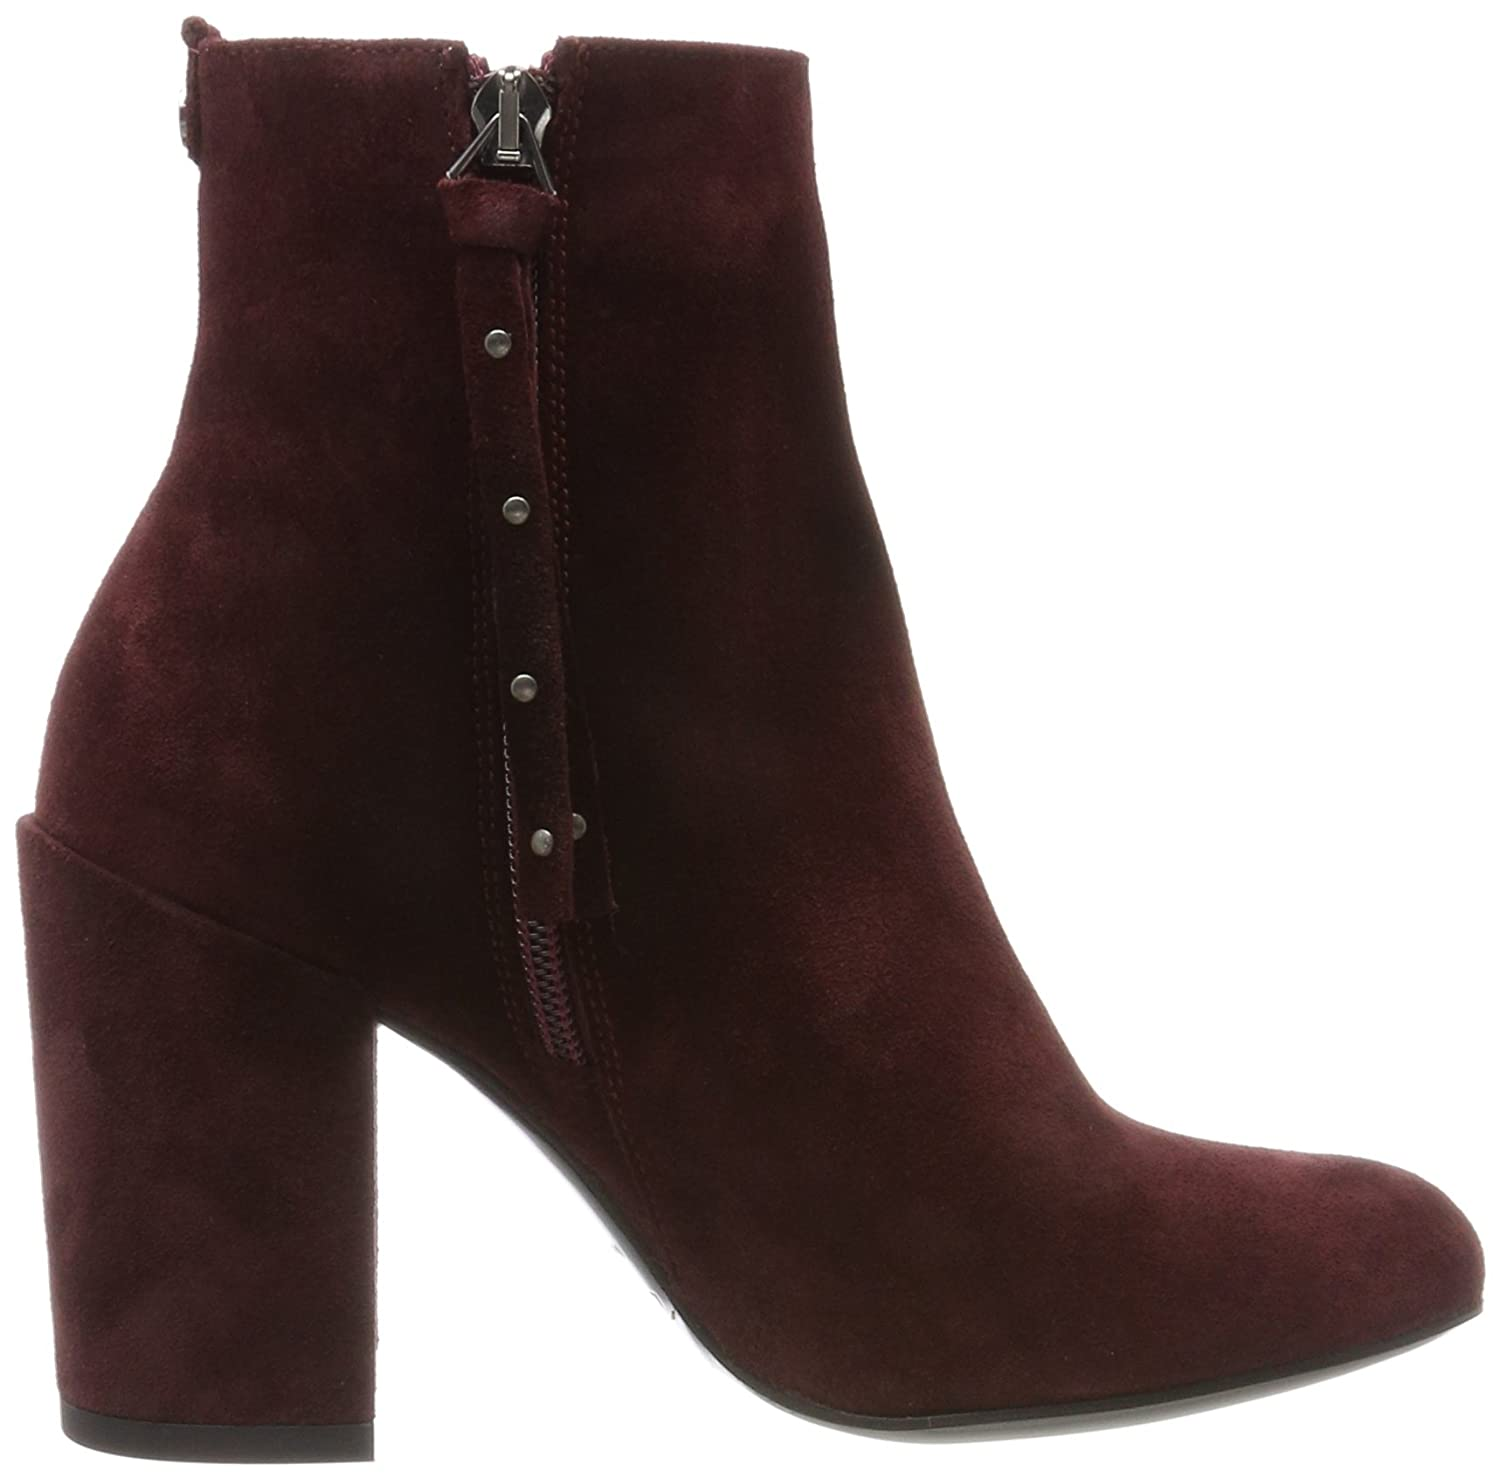 Liebeskind Liebeskind Liebeskind Berlin Damen Lh175500 Suede Pumps Rot (Gang Wine) 126c21